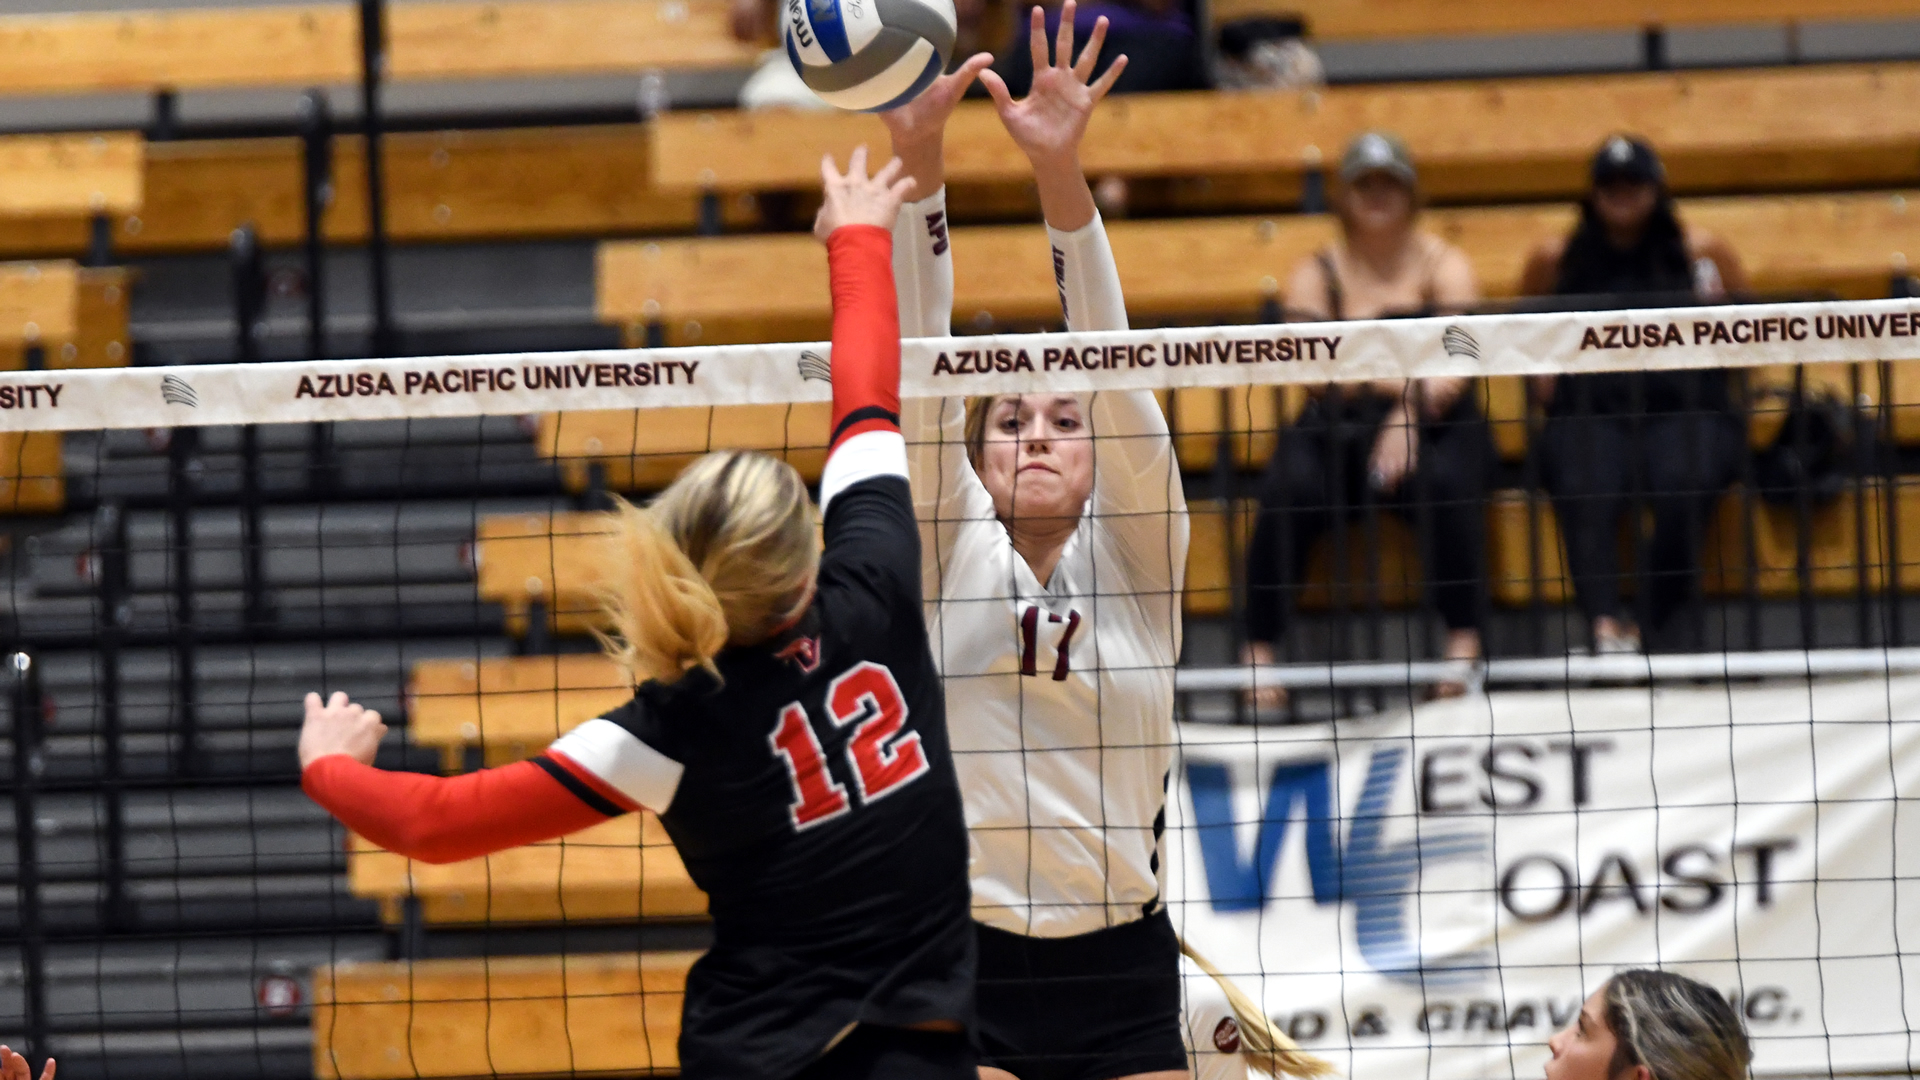 Miller Moves Into Third All Time Azusa Pacific University Athletics